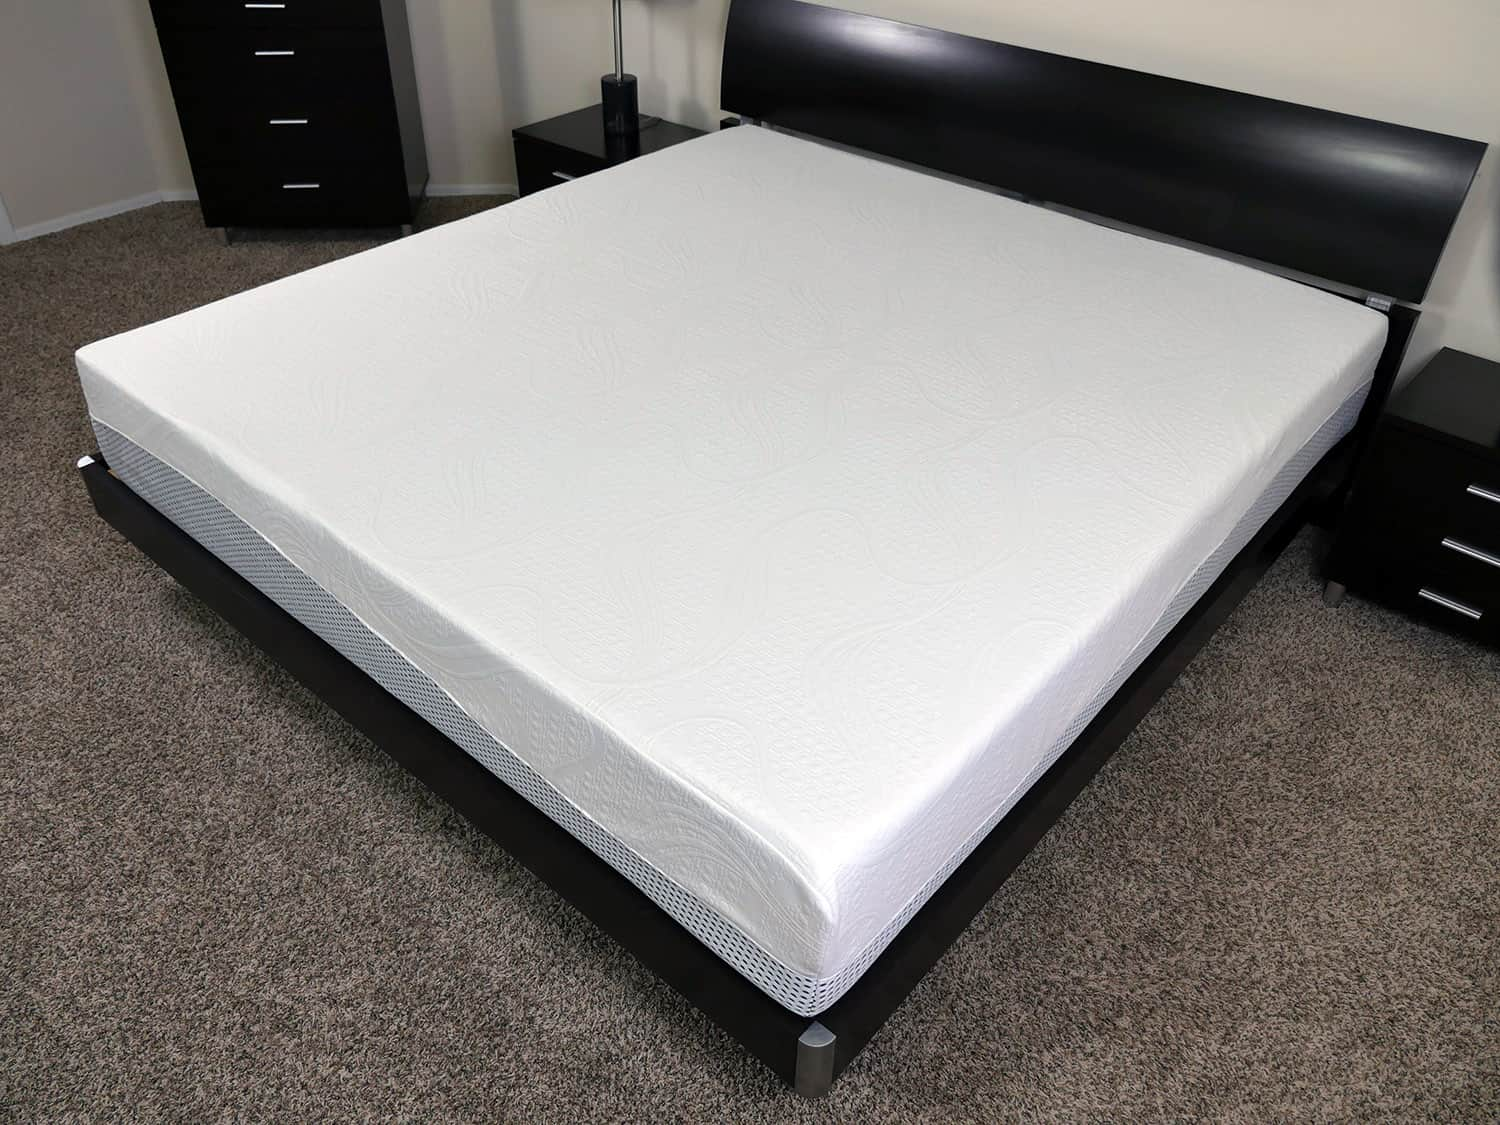 Best Mattress Amazon Best Amazon Mattress Sleepopolis